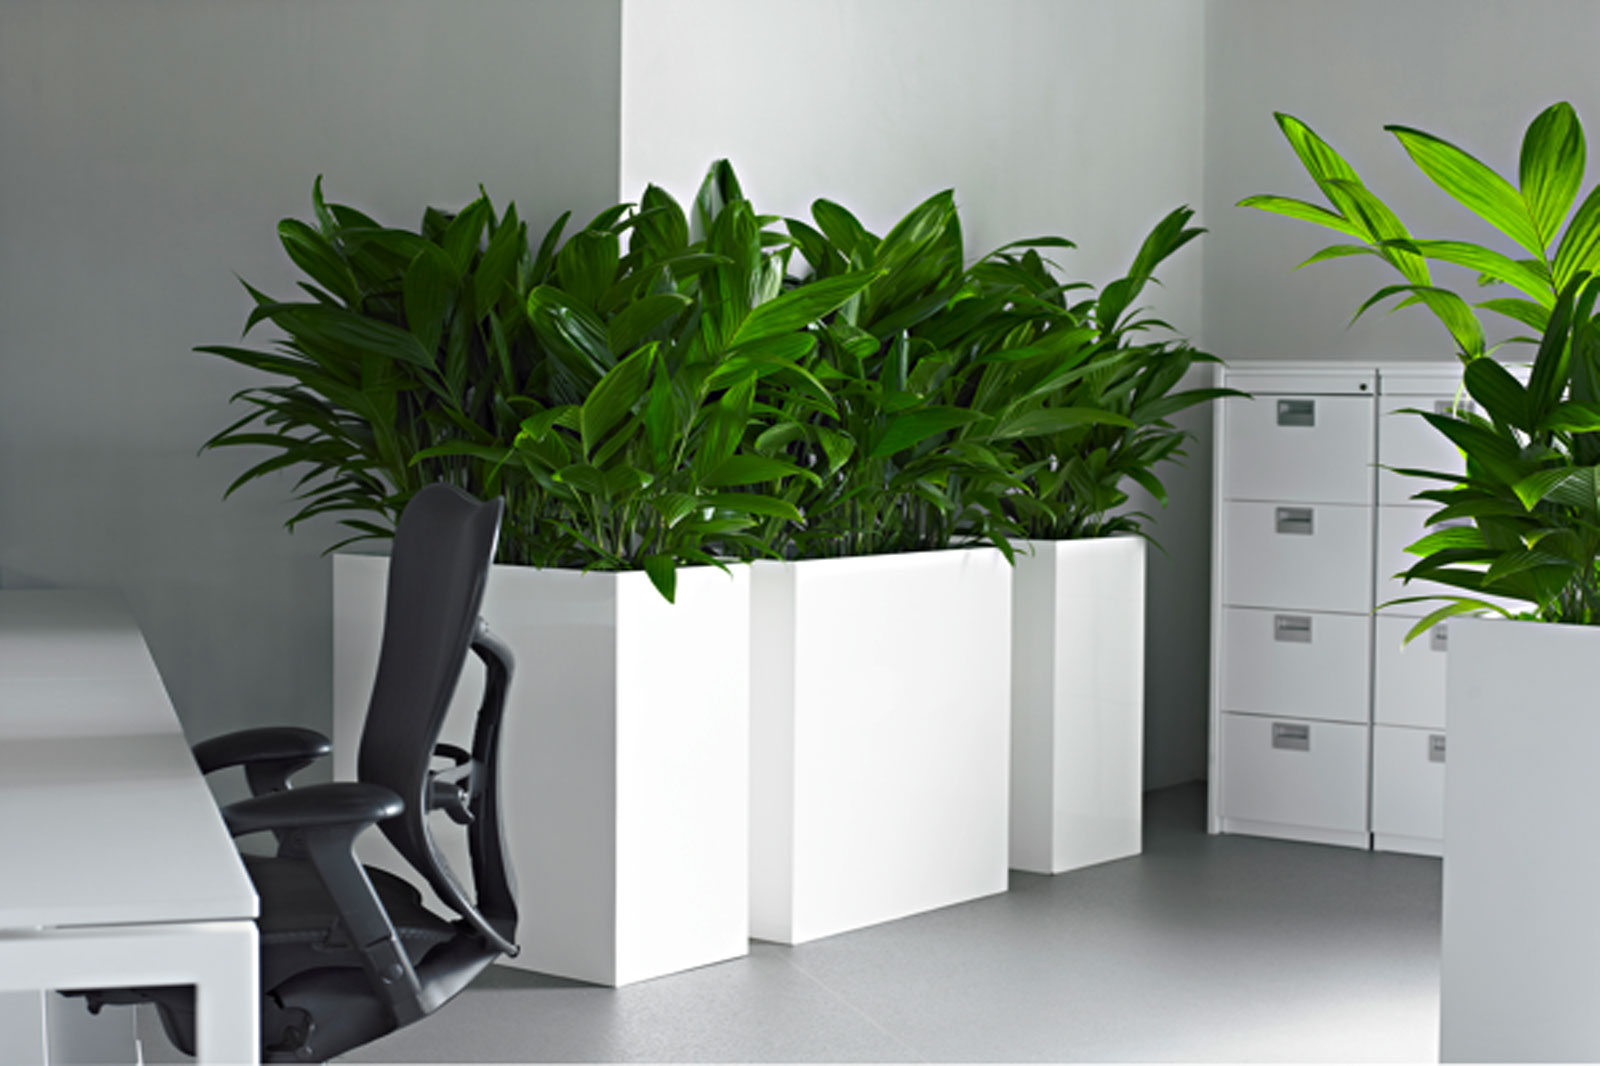 Plants from Luwasa greenstyling for the office and reception desk, subscription and leasing